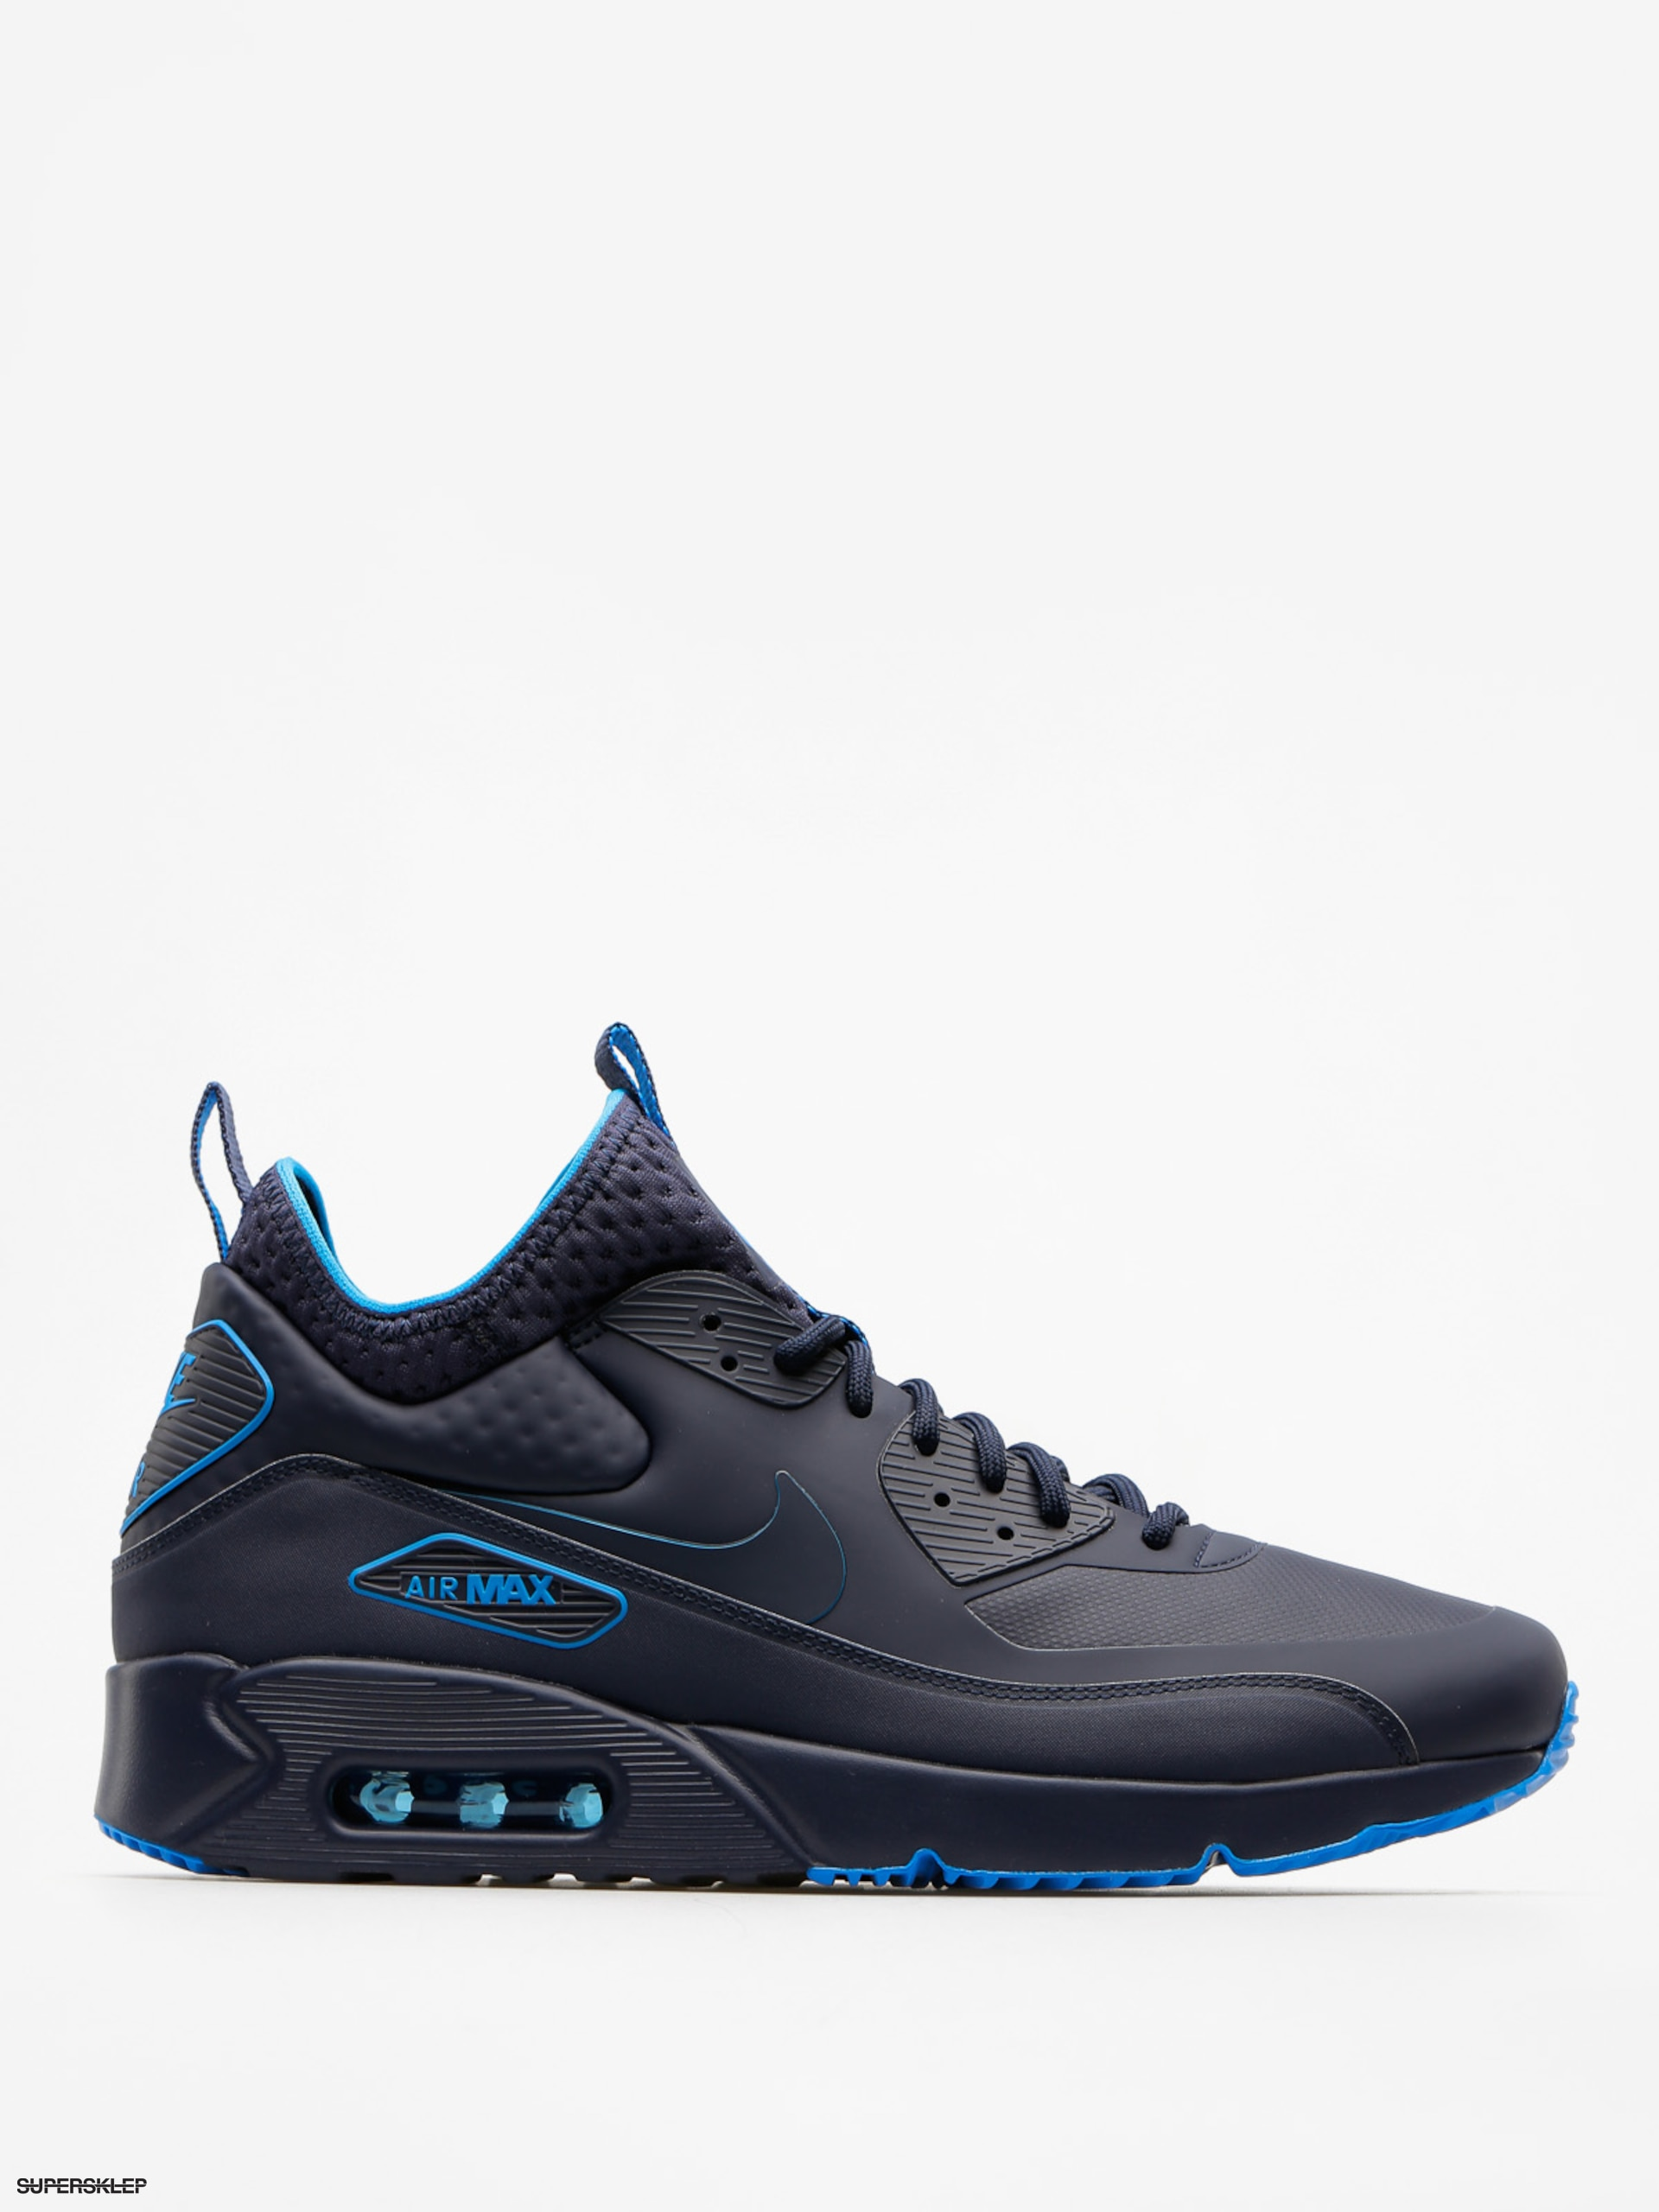 Nike Boty Air Max 90 Ultra Mid Winter Se (obsidian/obsidian thunder blue)